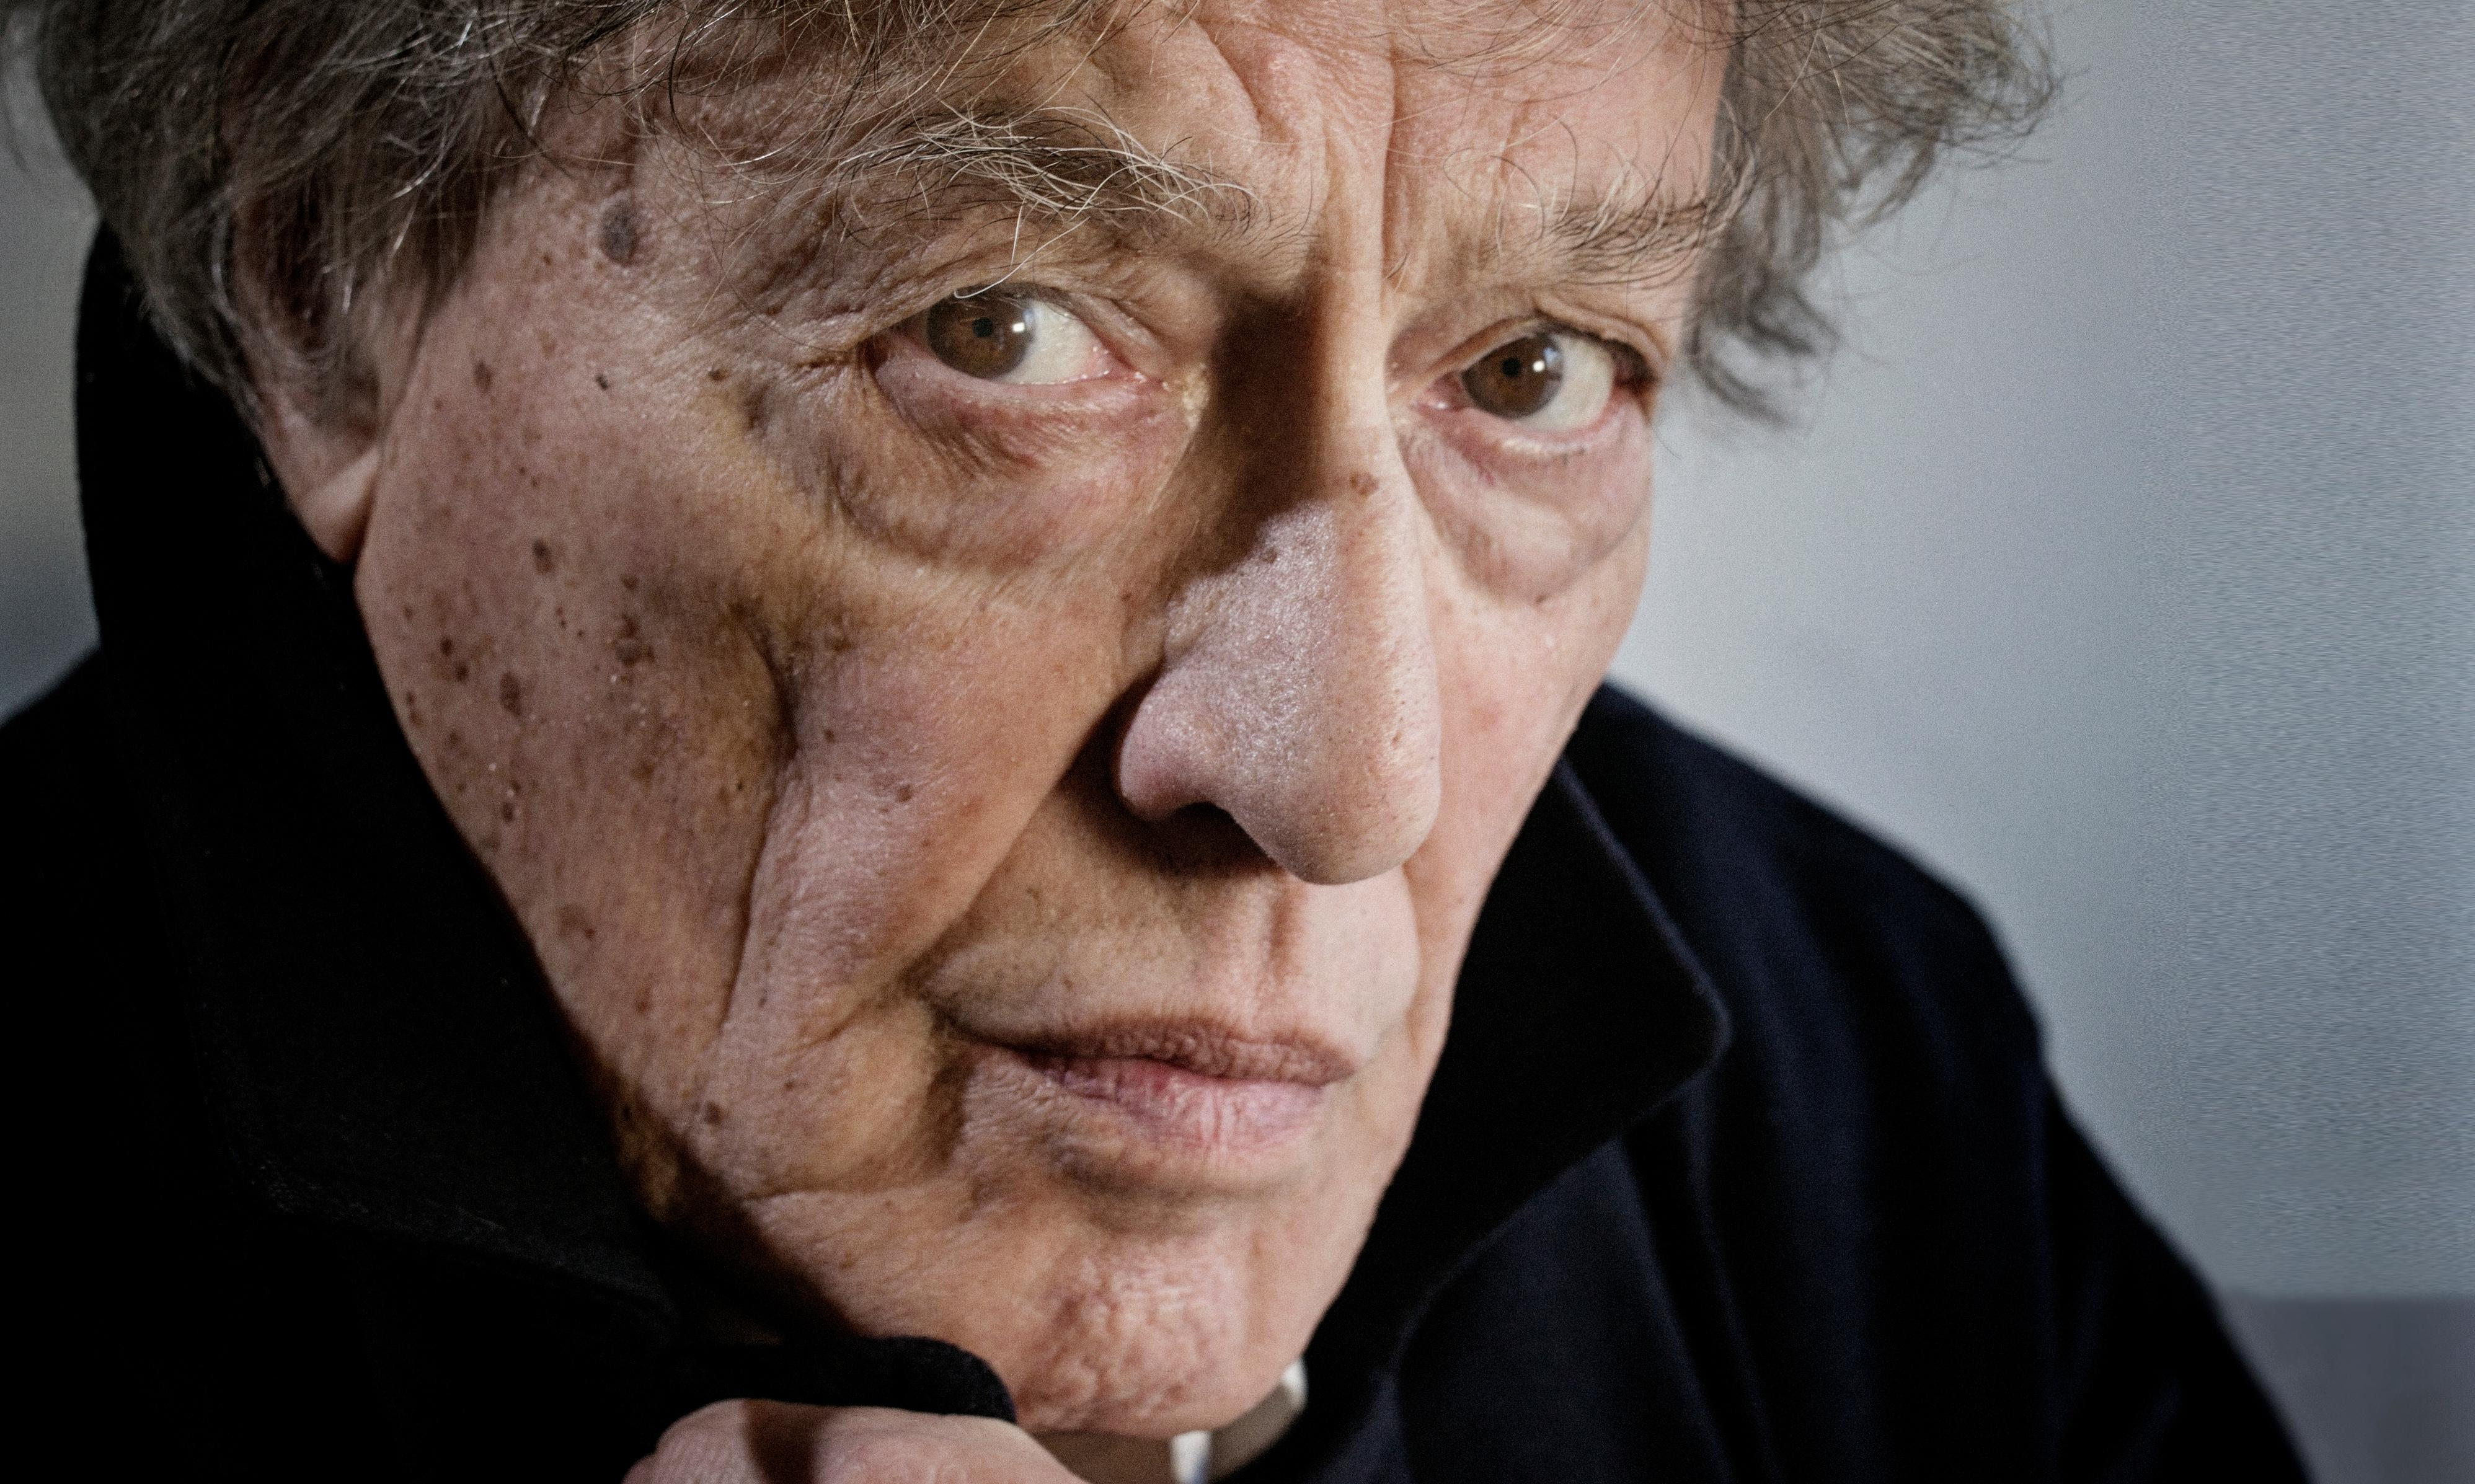 Life, love and Leopoldstadt: don't be surprised if Tom Stoppard gets emotional